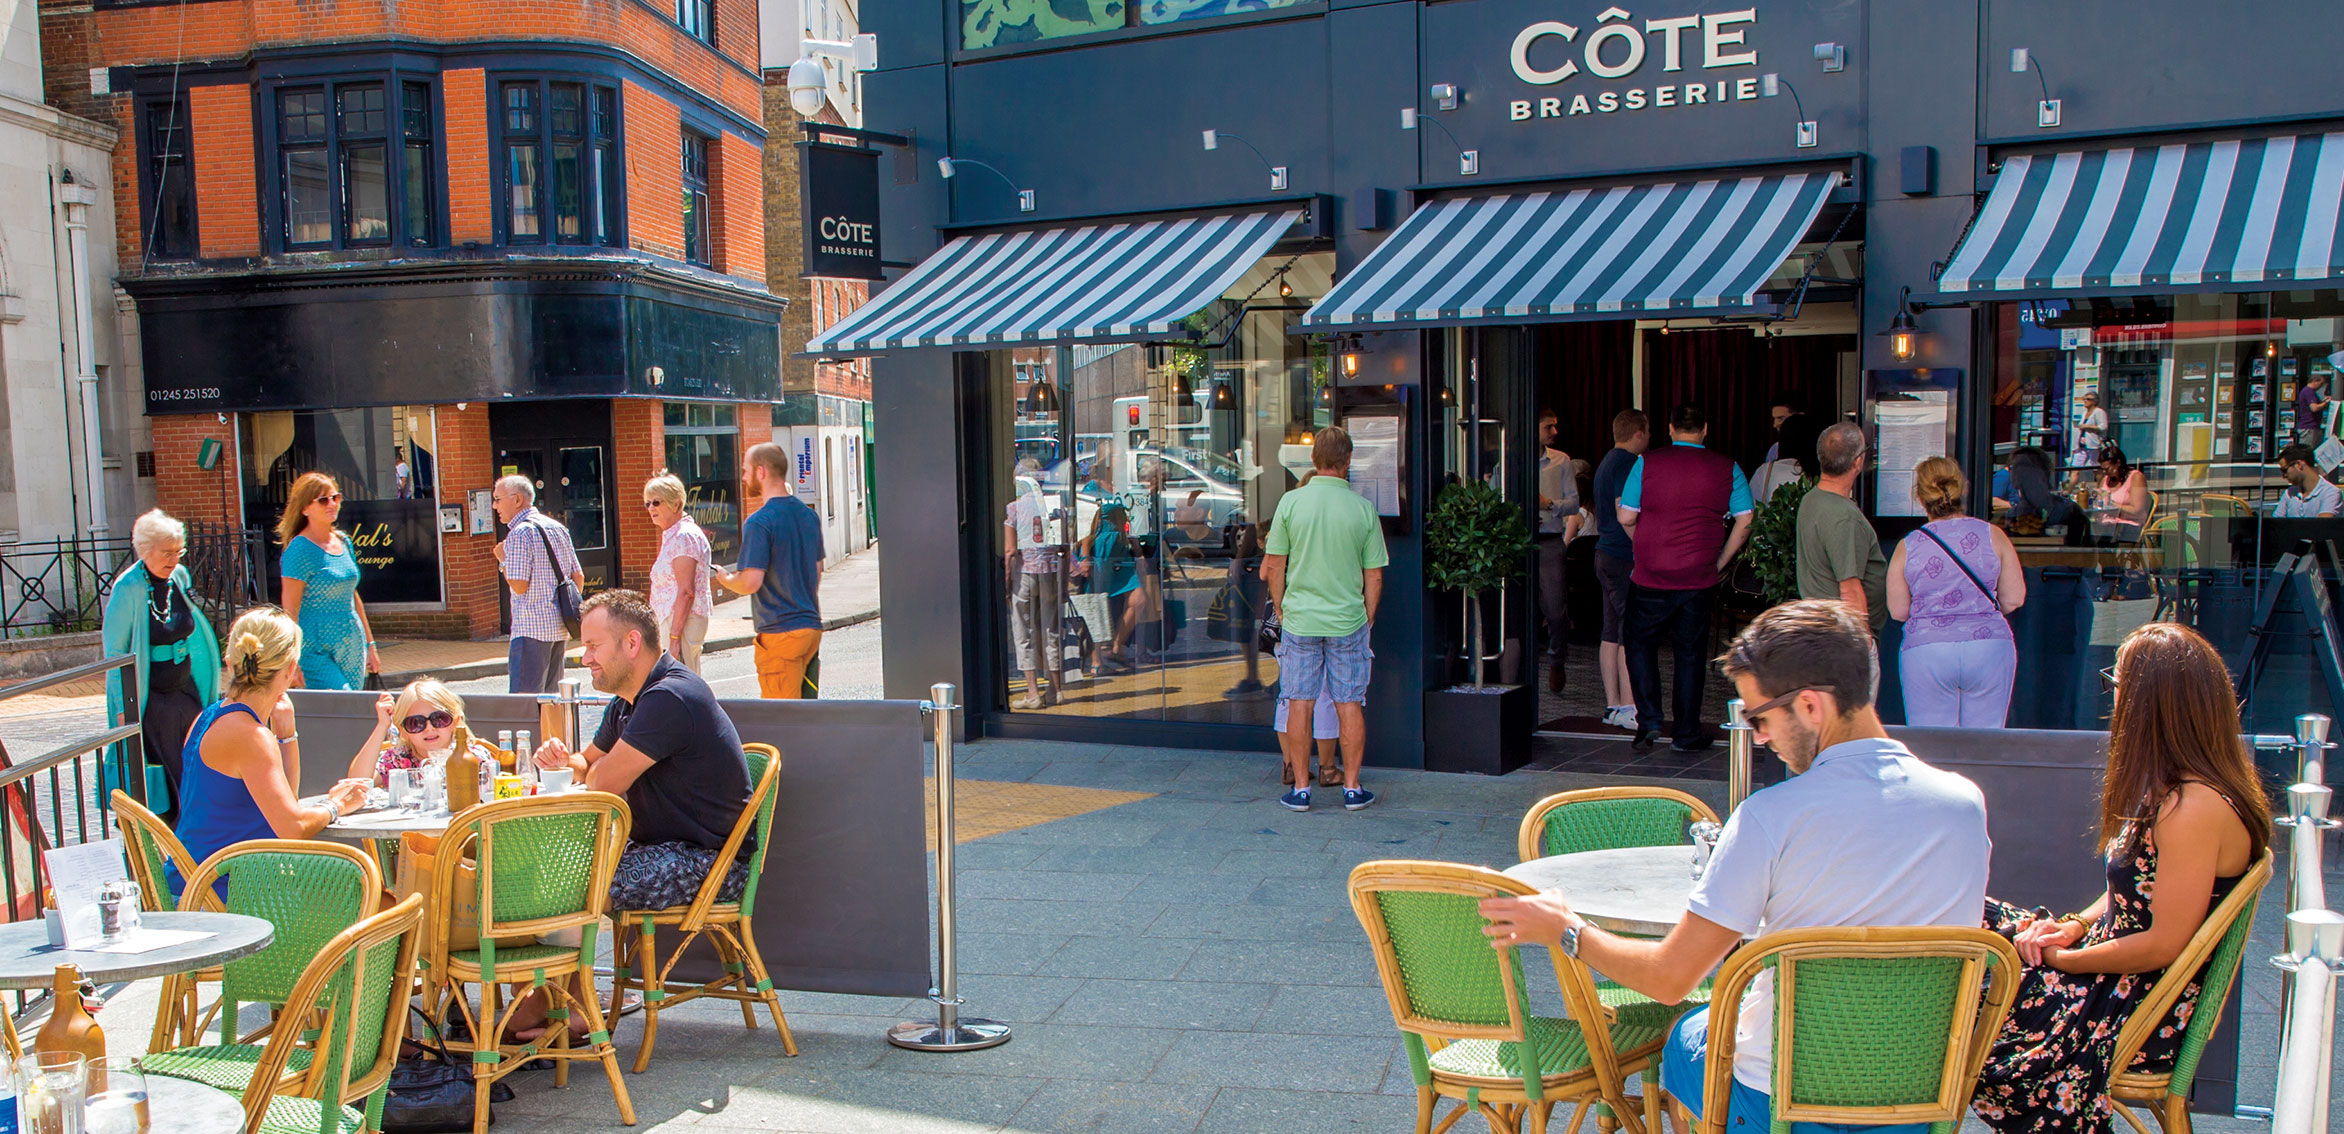 Exchange Square is a new hub for al fresco dining